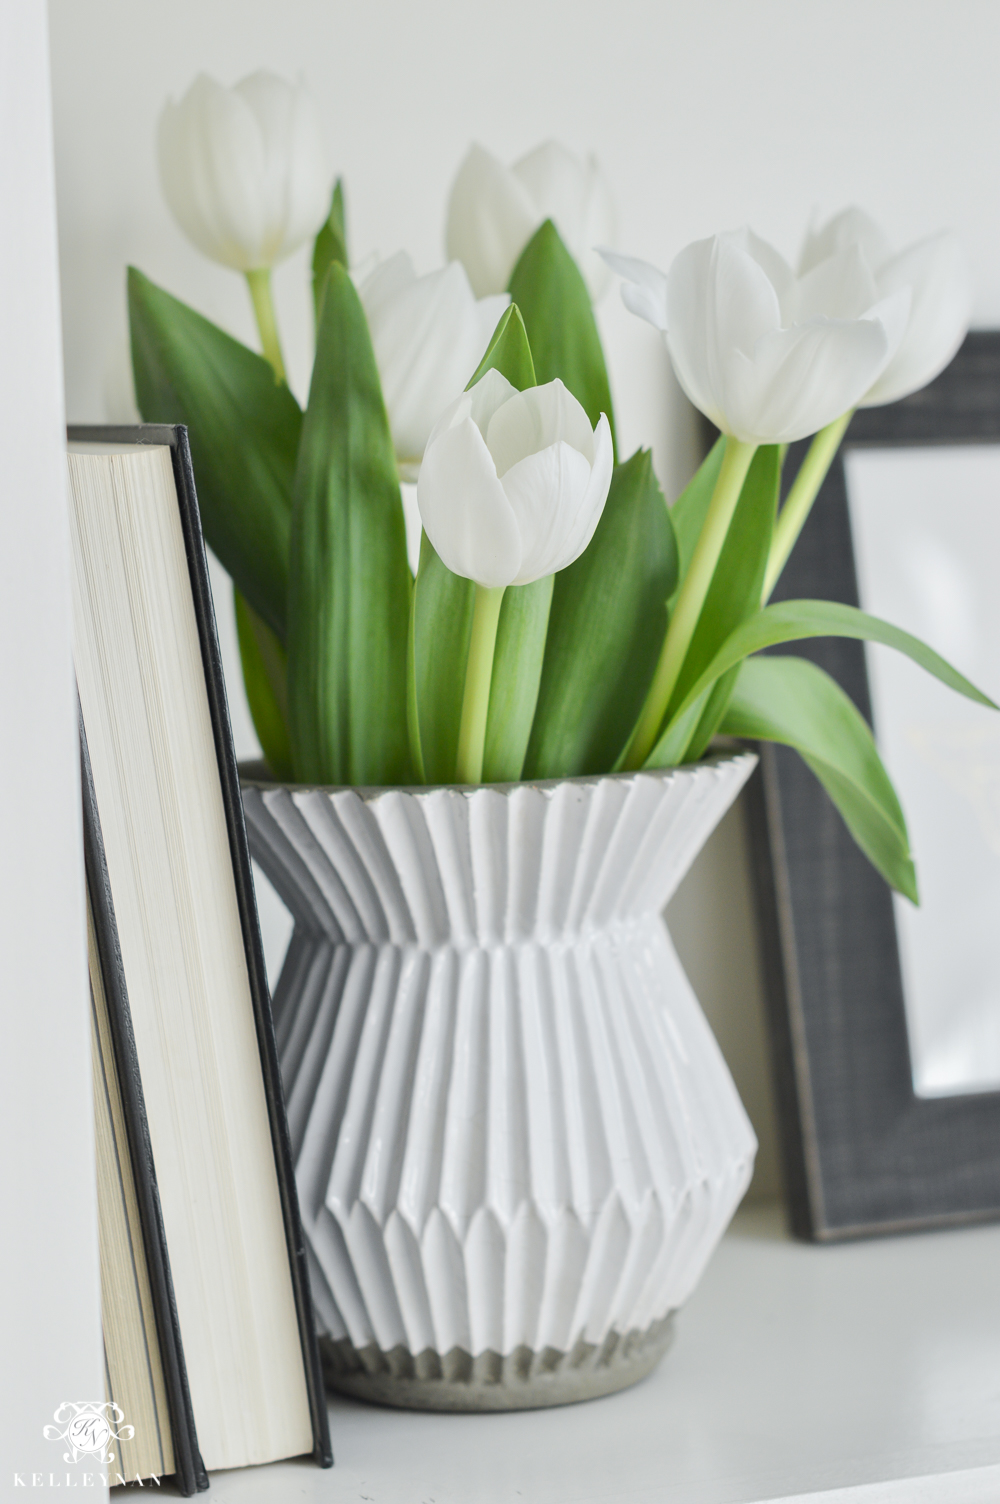 Shades of Summer Home Tour with Neutrals and Naturals- white tulips on shelf with West Elm accordian vase